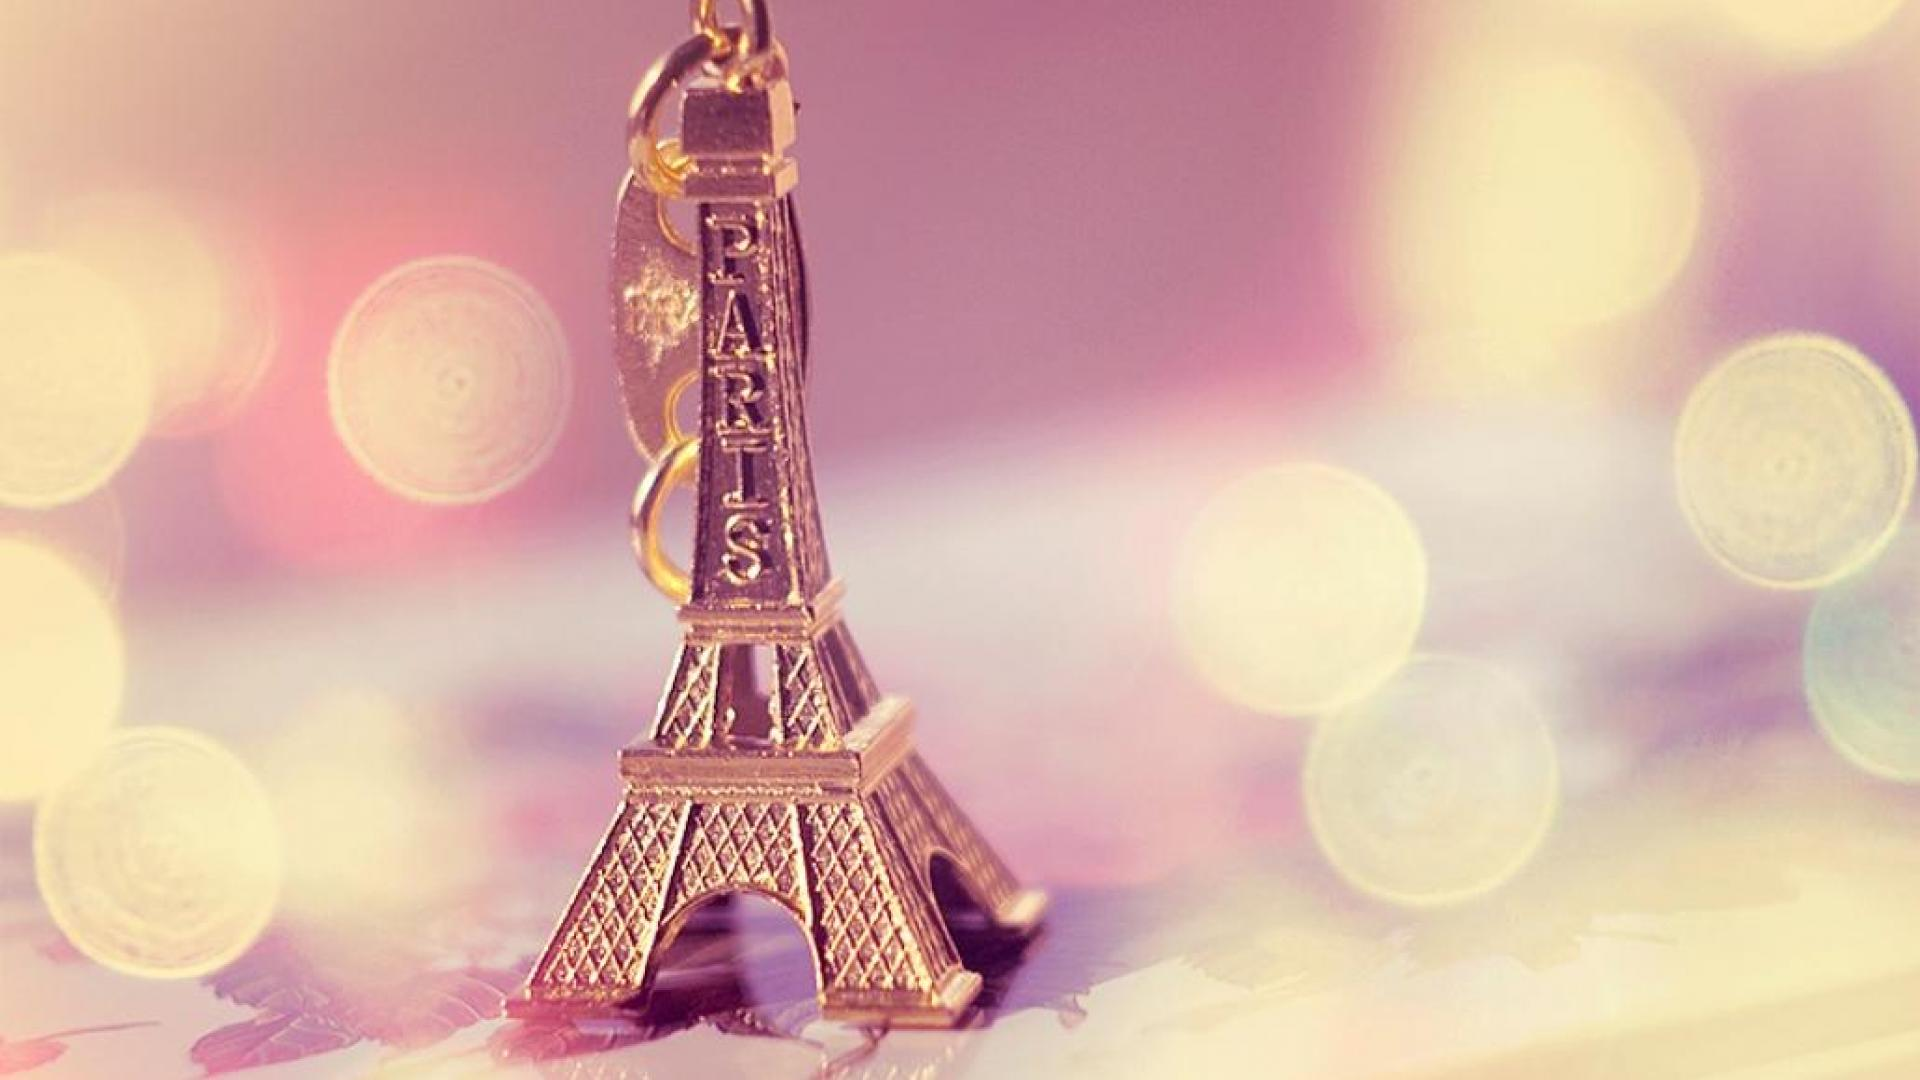 35 Hd Paris Backgrounds The City Of Lights And Romance